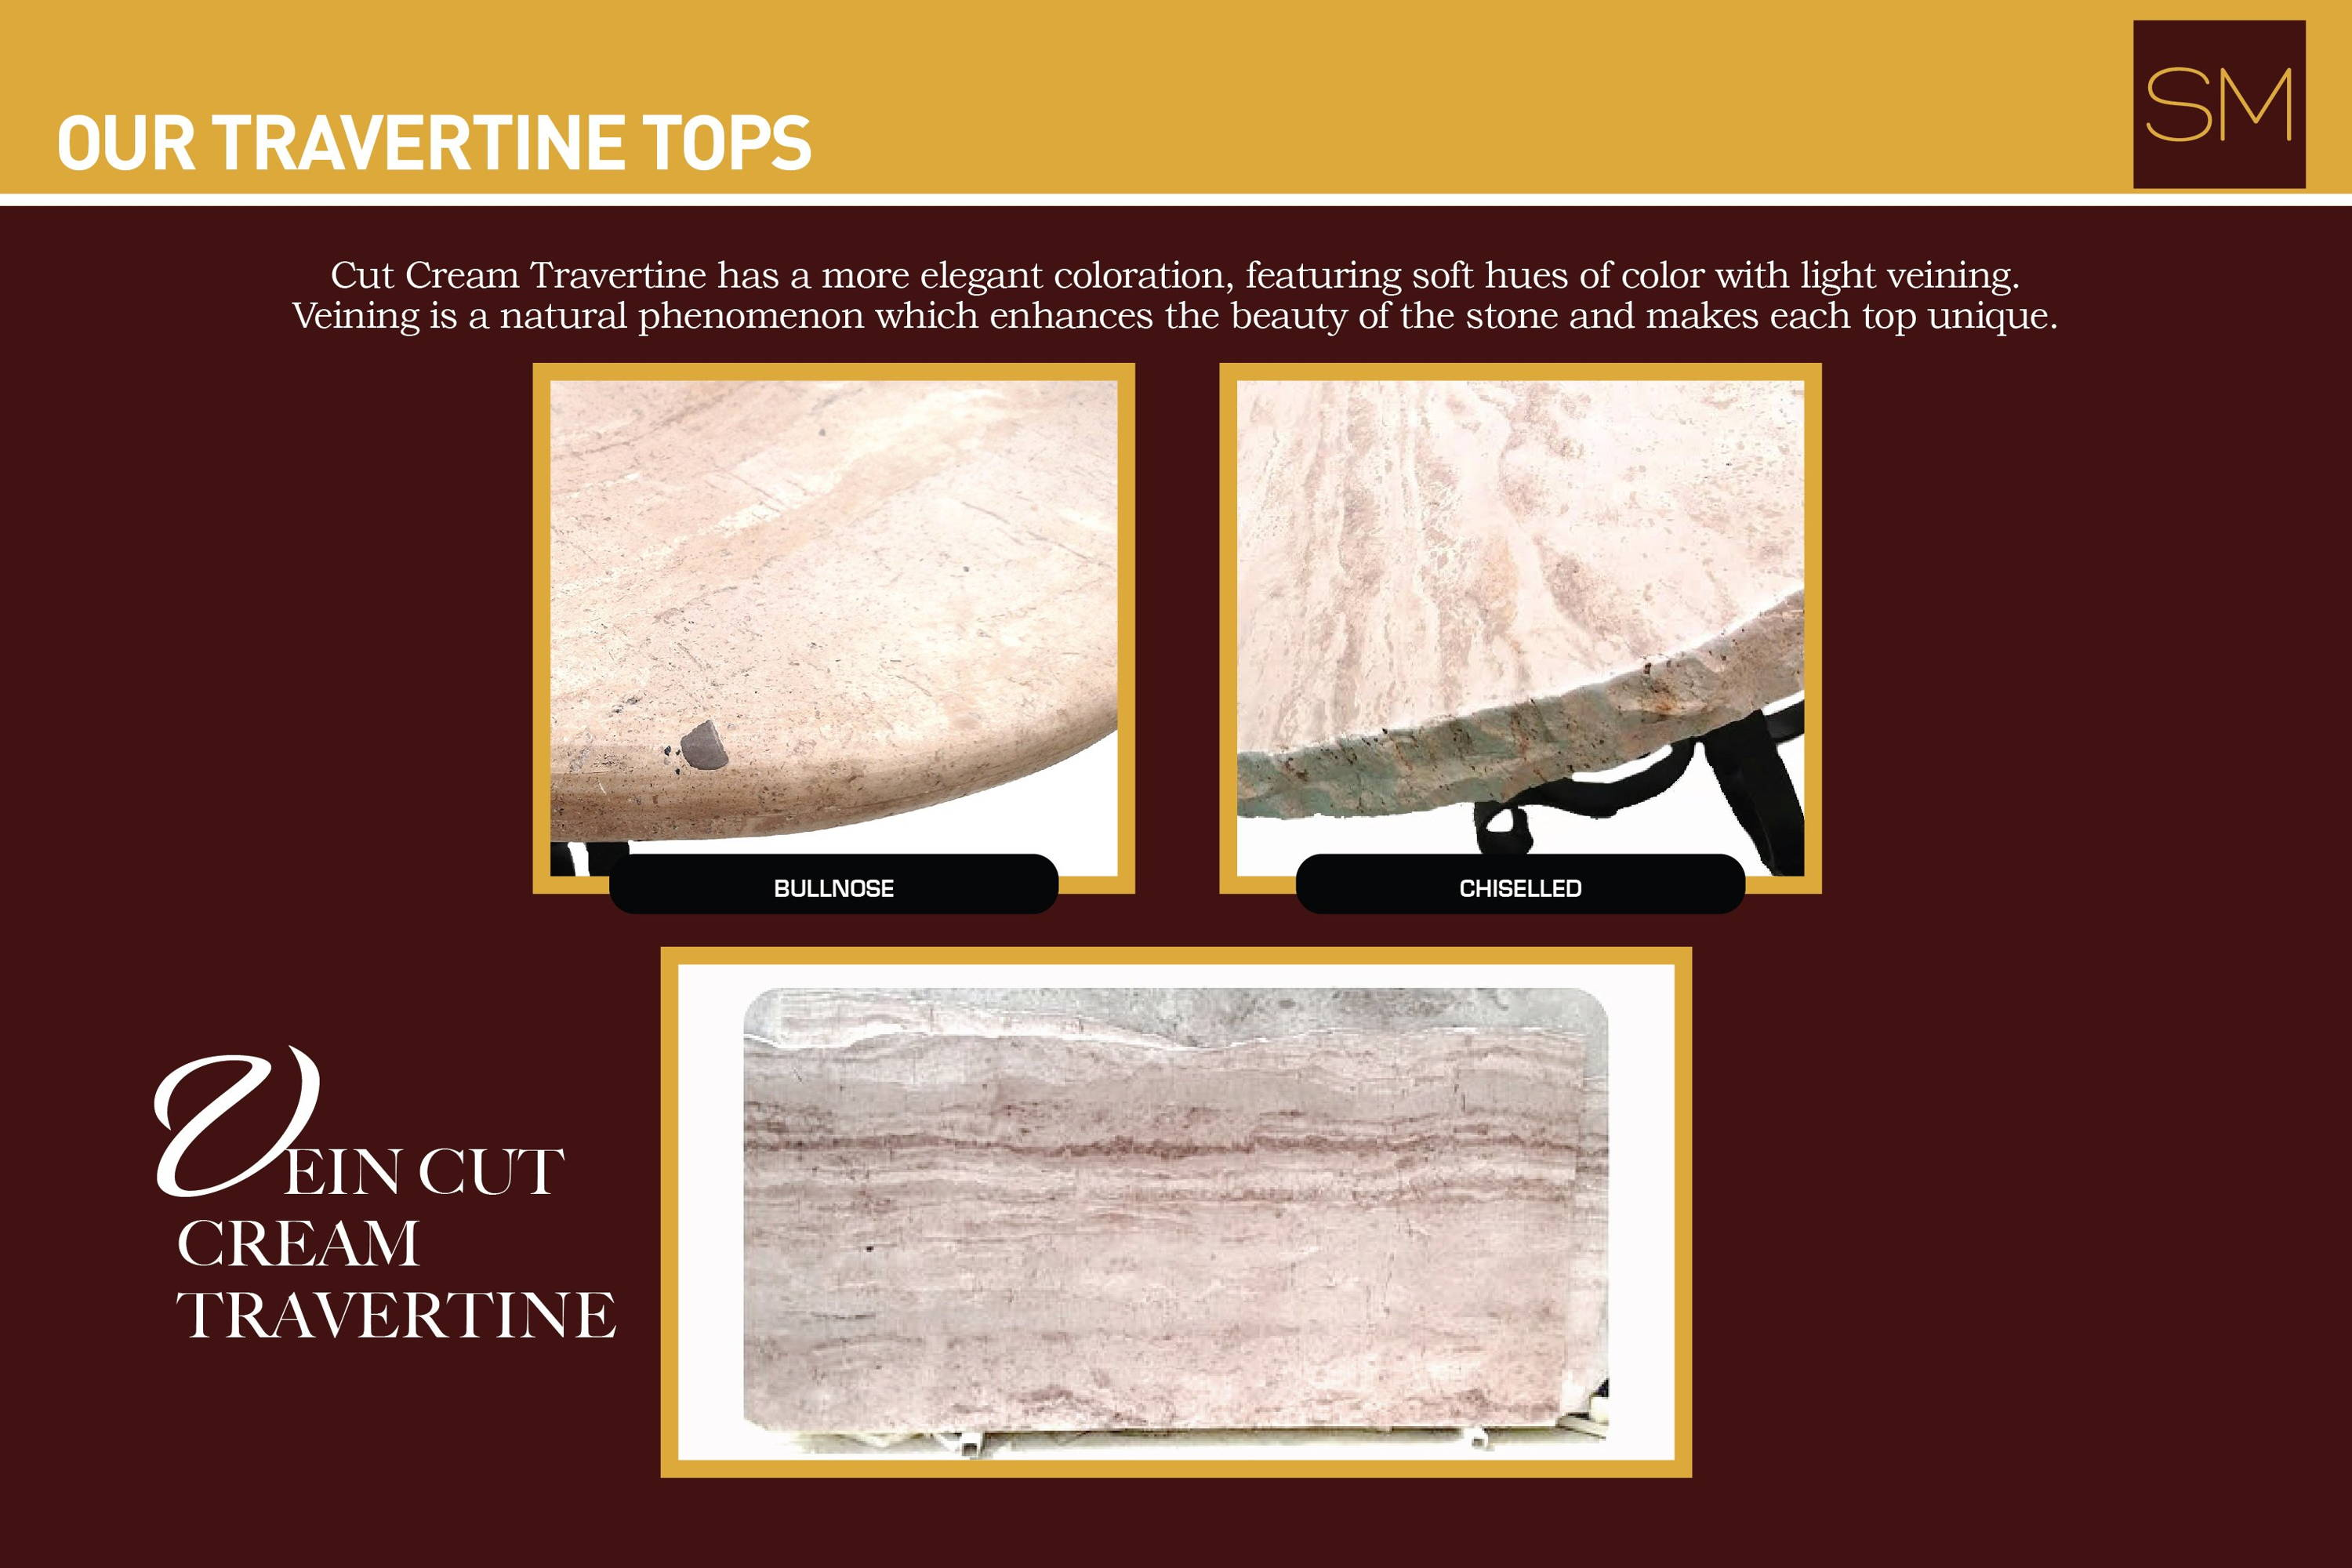 Vein cut cream travertine tops with various edge options; bullnose and hand chiselled